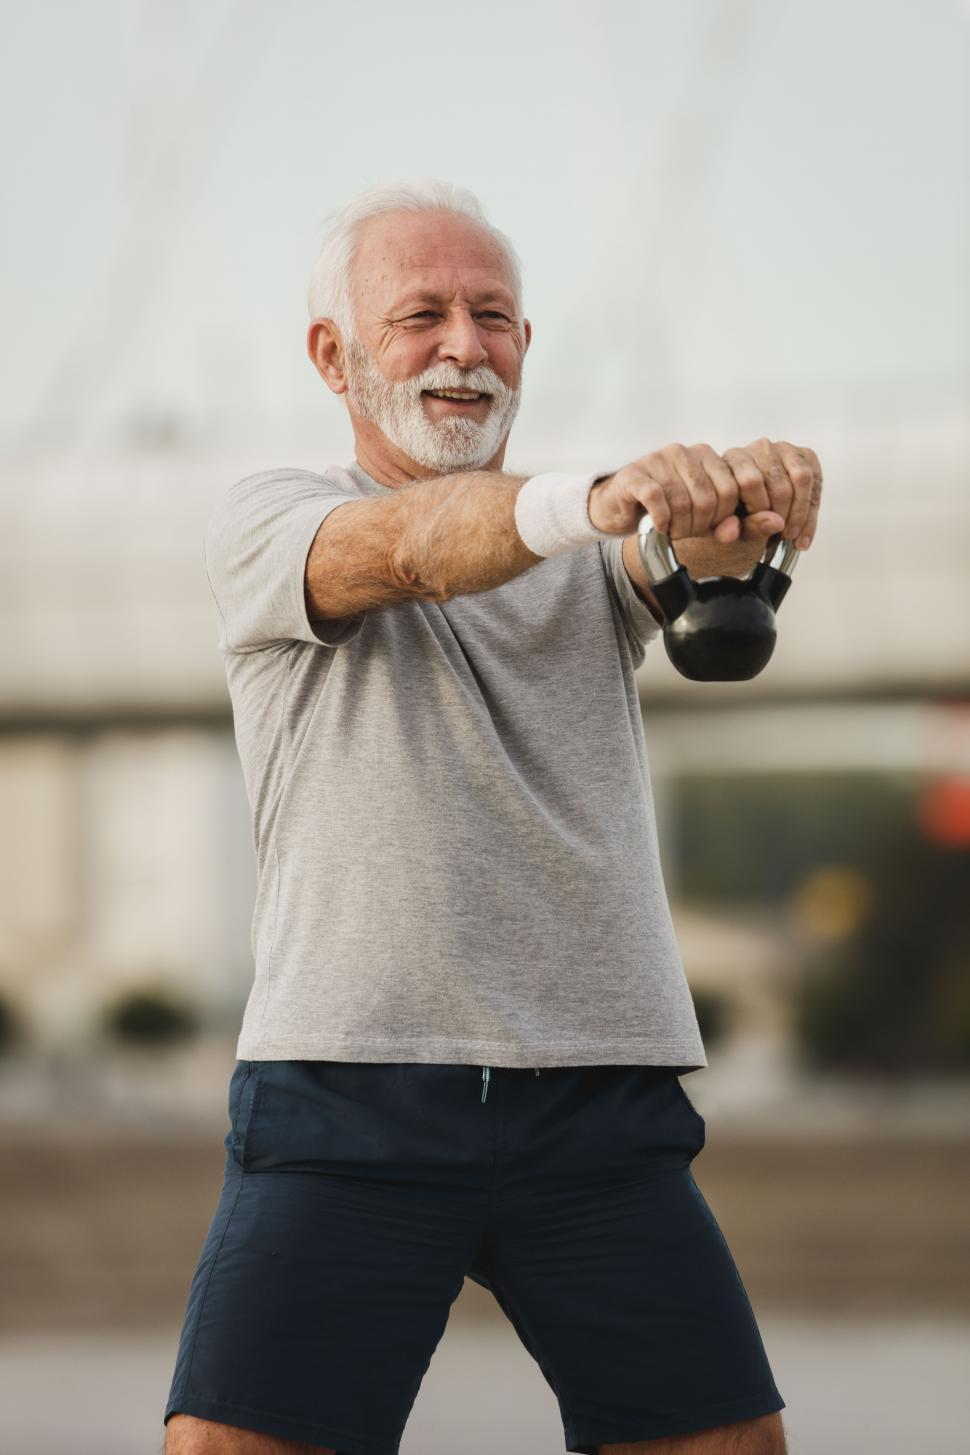 Download Free Stock Photo of Senior old man with dumbbell